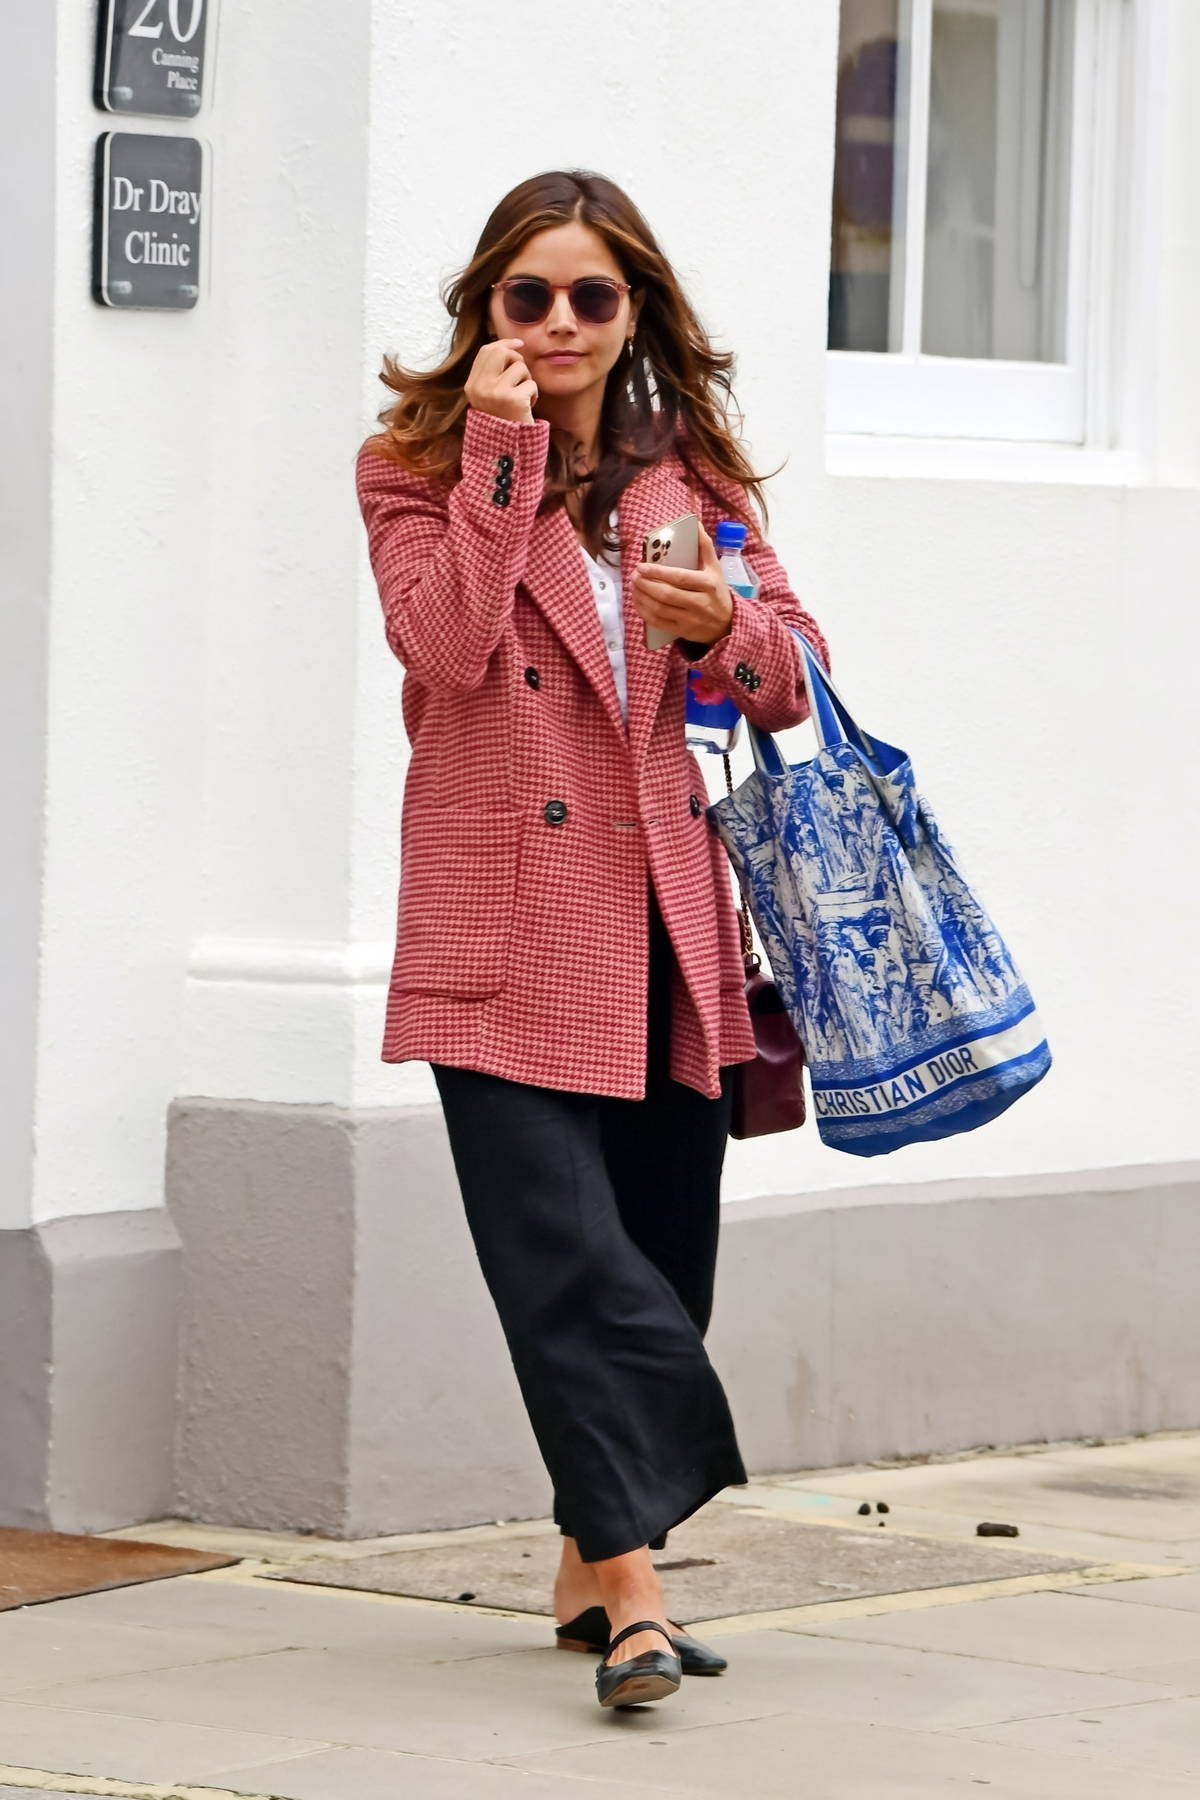 Jenna Coleman seen leaving Dr. Dray's Clinic in London, UK